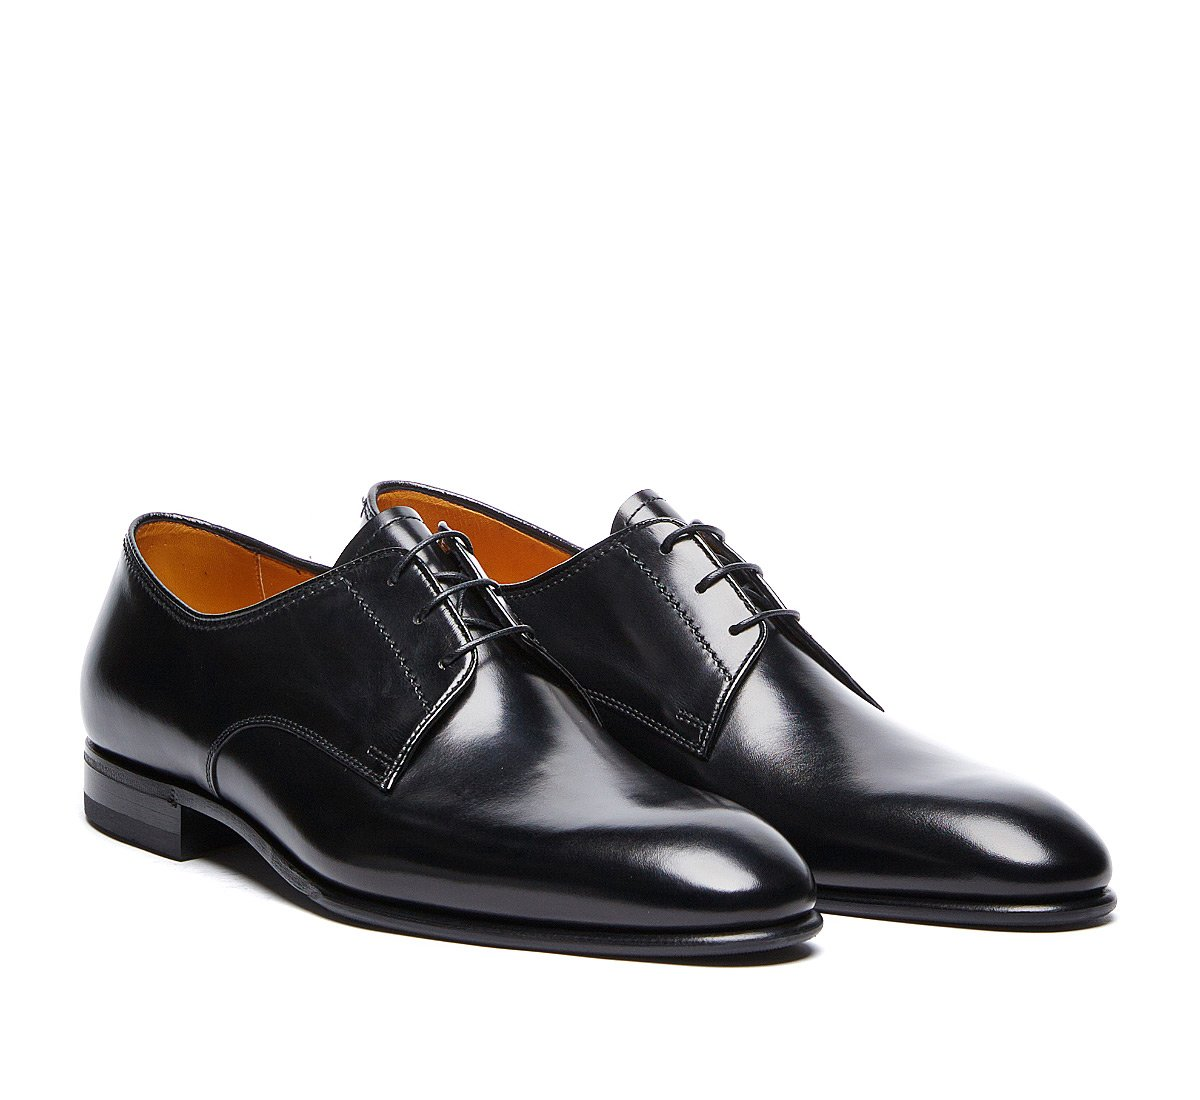 Soft calfskin derbies